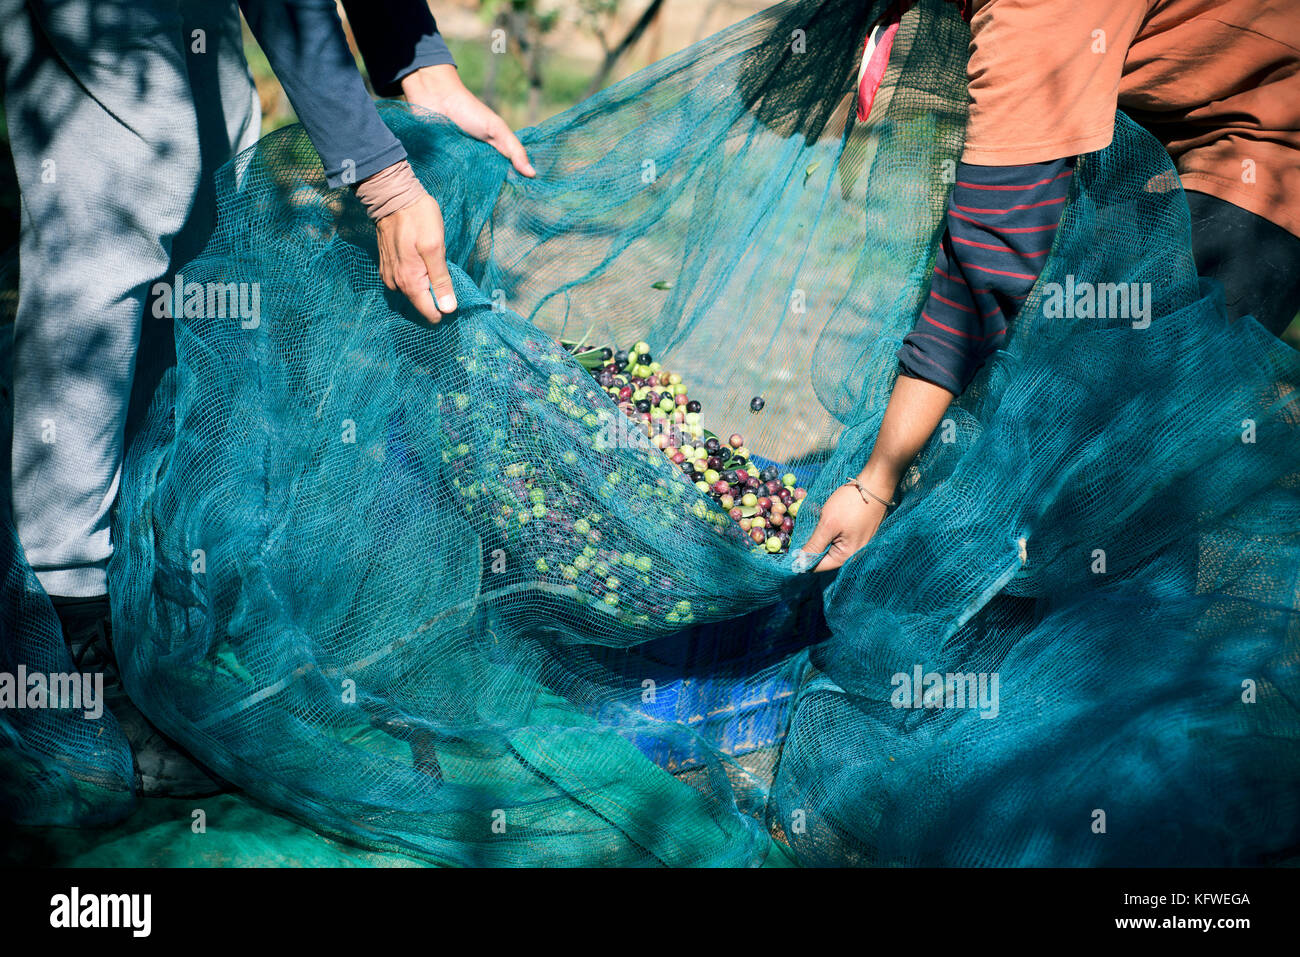 closeup of a young caucasian man and a young caucasian woman carrying a net full of arbequina olives during the Stock Photo